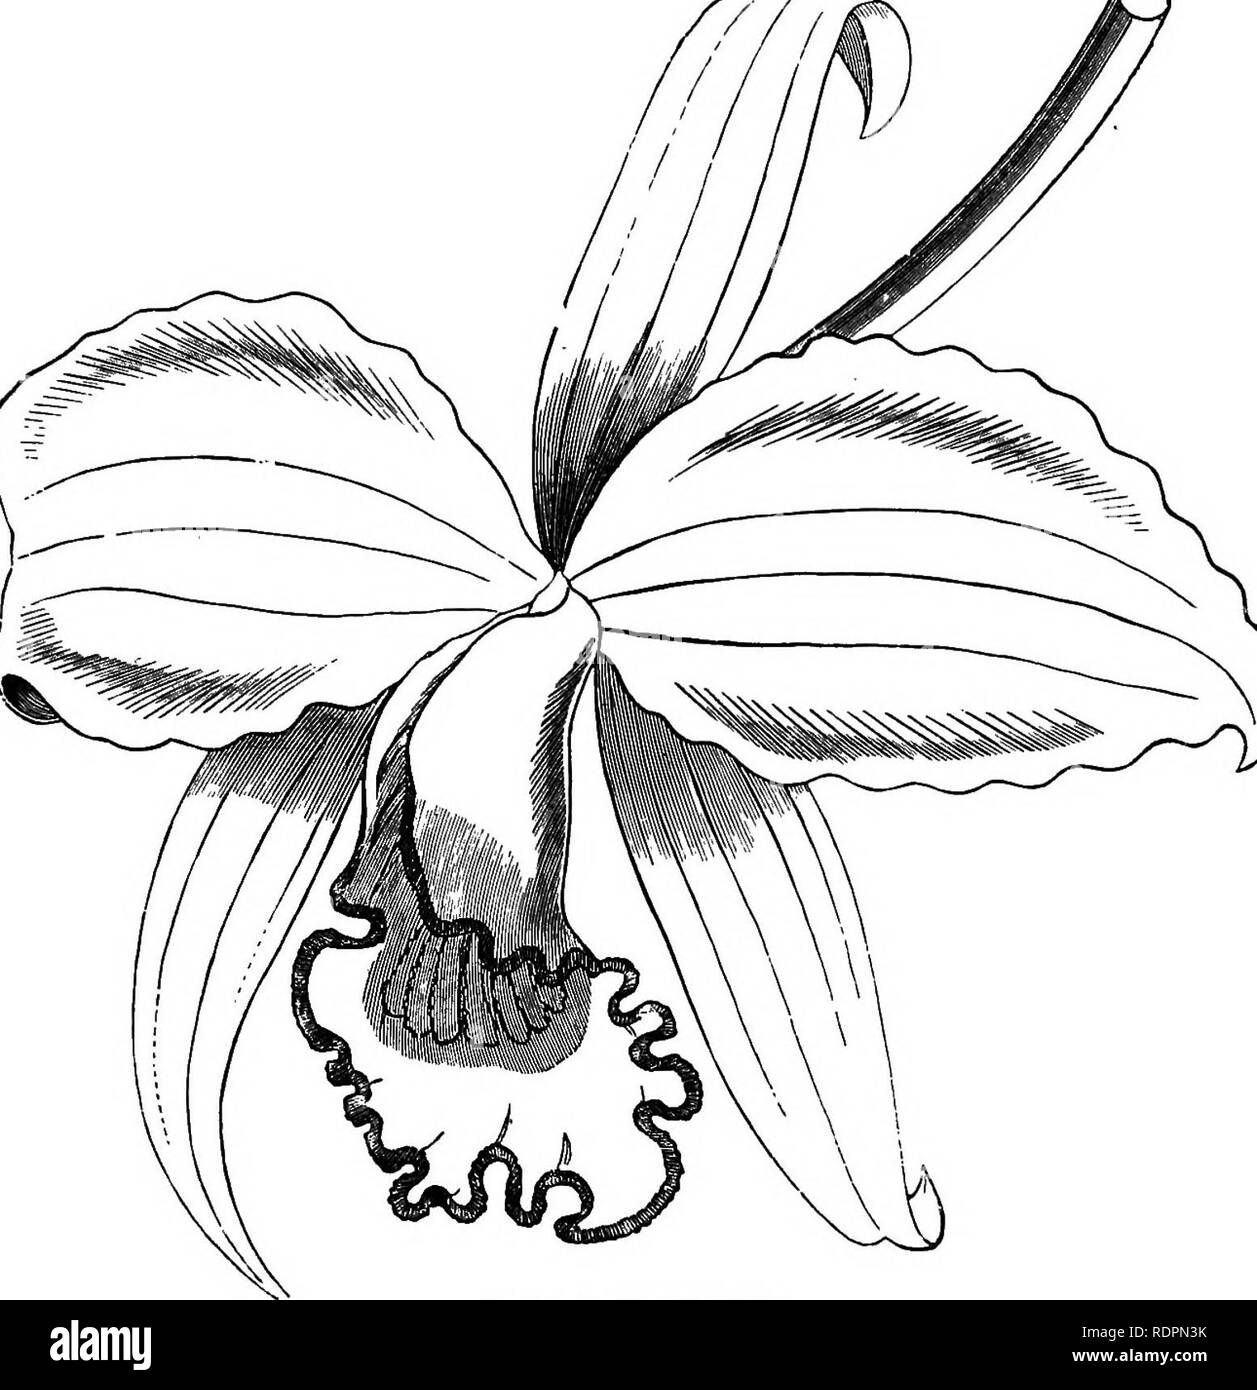 . The orchid-grower's manual, containing descriptions of the best species and varieties of orchidaceous plants in cultivation ... Orchids. LAKLIA. 439 L. LAWRENCEANA—See Laelia crispilabia. L. LEEANA, Bchh. f.—This is a very dwarf-growing and distinct Laelia, supposed to be a natural hybrid. In growth it somewhat resembles Cattleya inarginata, but the pseudobulbs and leaves are considerably longer. The flowers are very handsome, the sepals and petals being rosy-magenta, and the anterior lobe of the lip bright magenta-crimson; the lateral lobes of the lip, which enclose the column, are pale ros - Stock Image